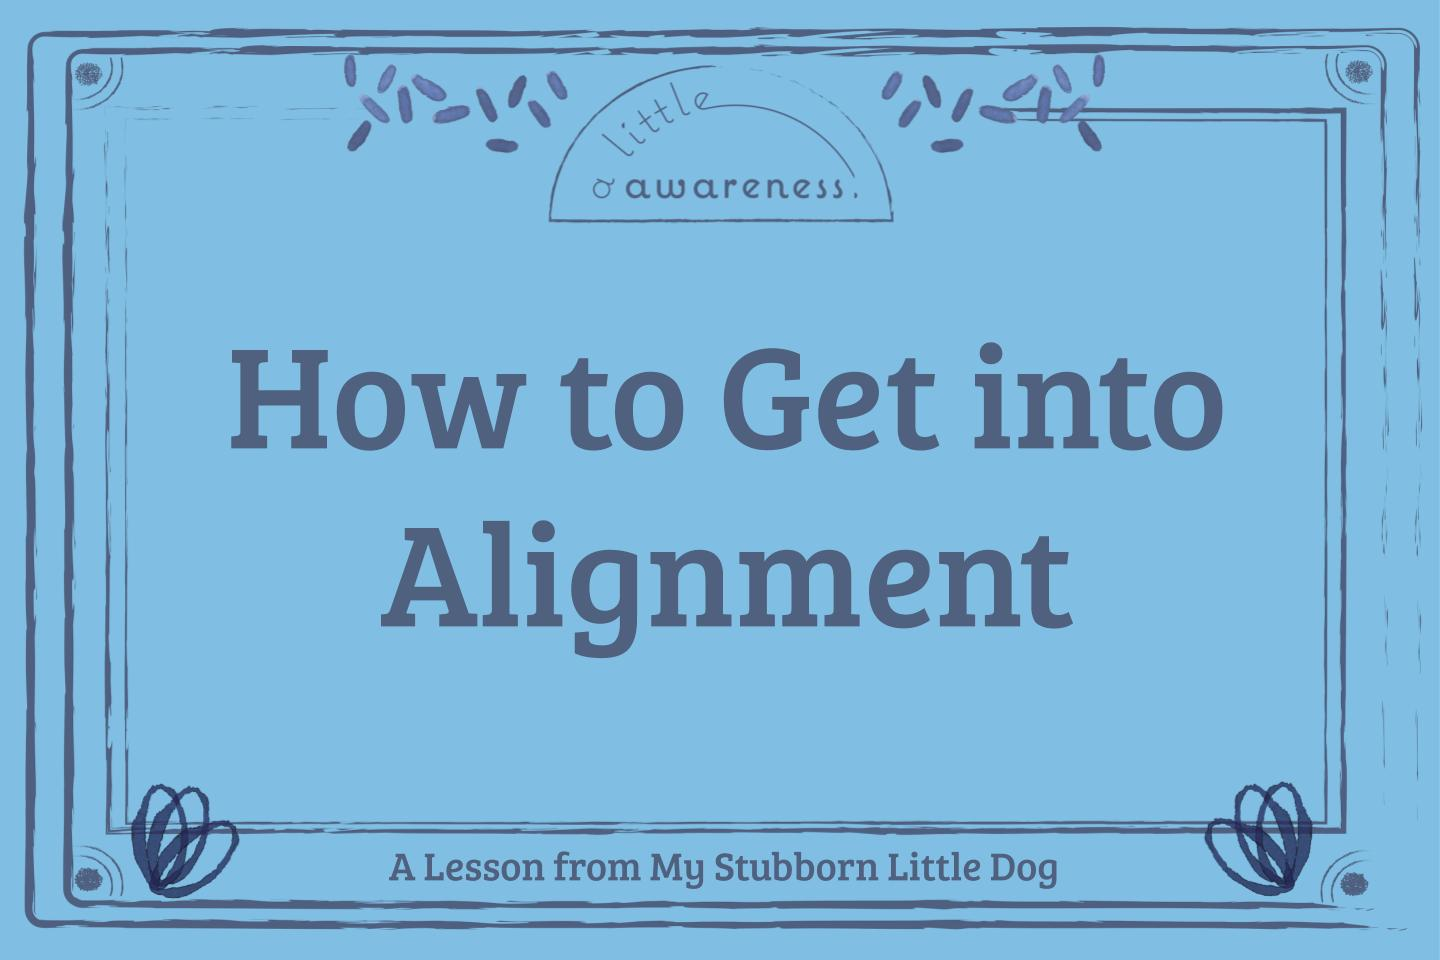 How to Get Into Alignment